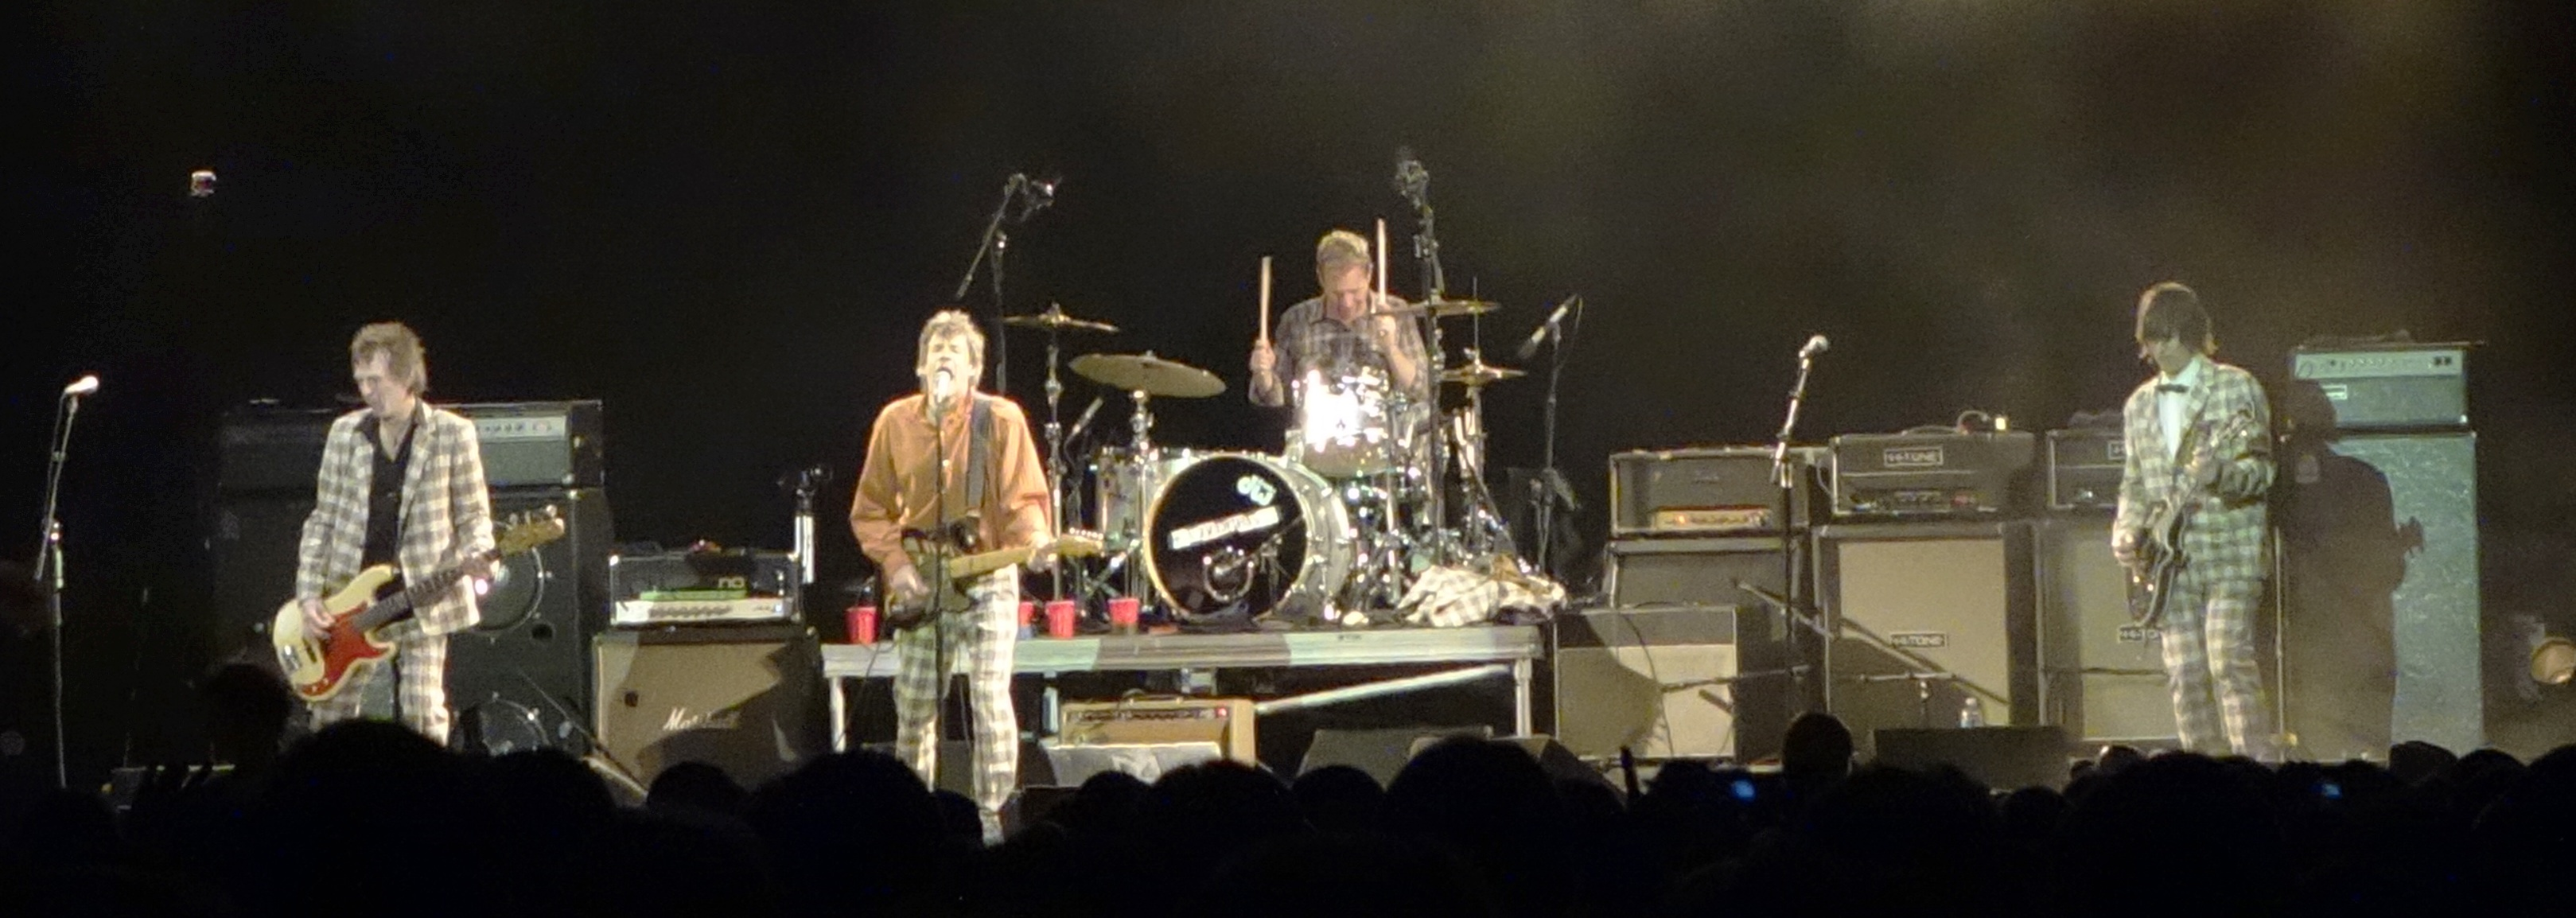 The-Replacements-Midway-Stadium-St-Paul-2014-4